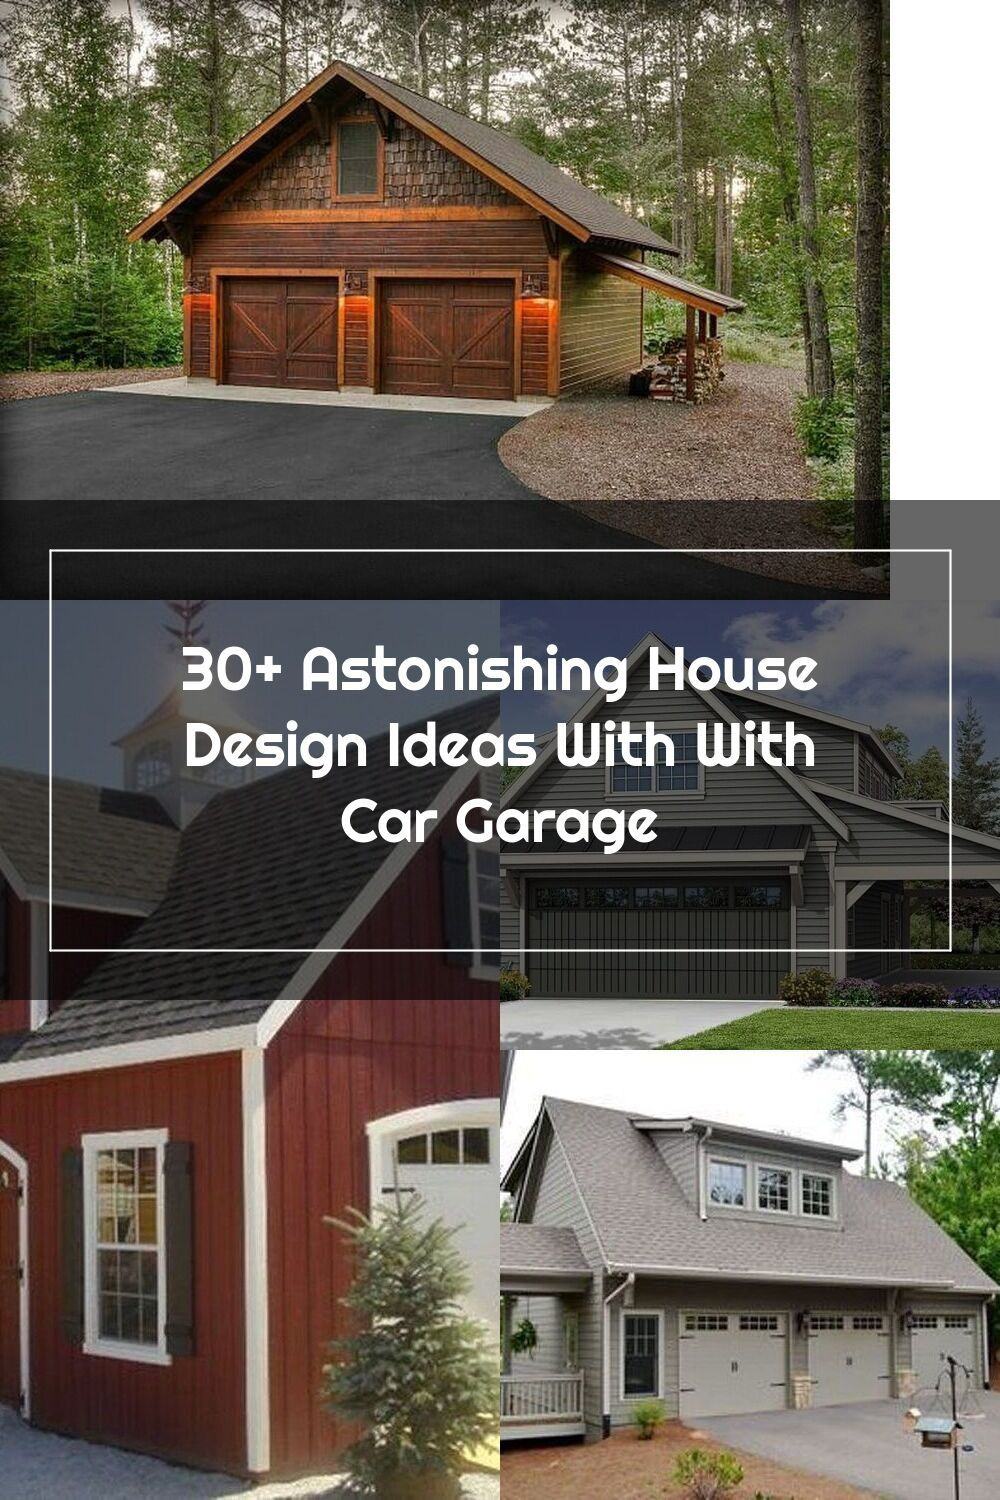 Cool 30+ Astonishing House Design Ideas With With Car Garage.